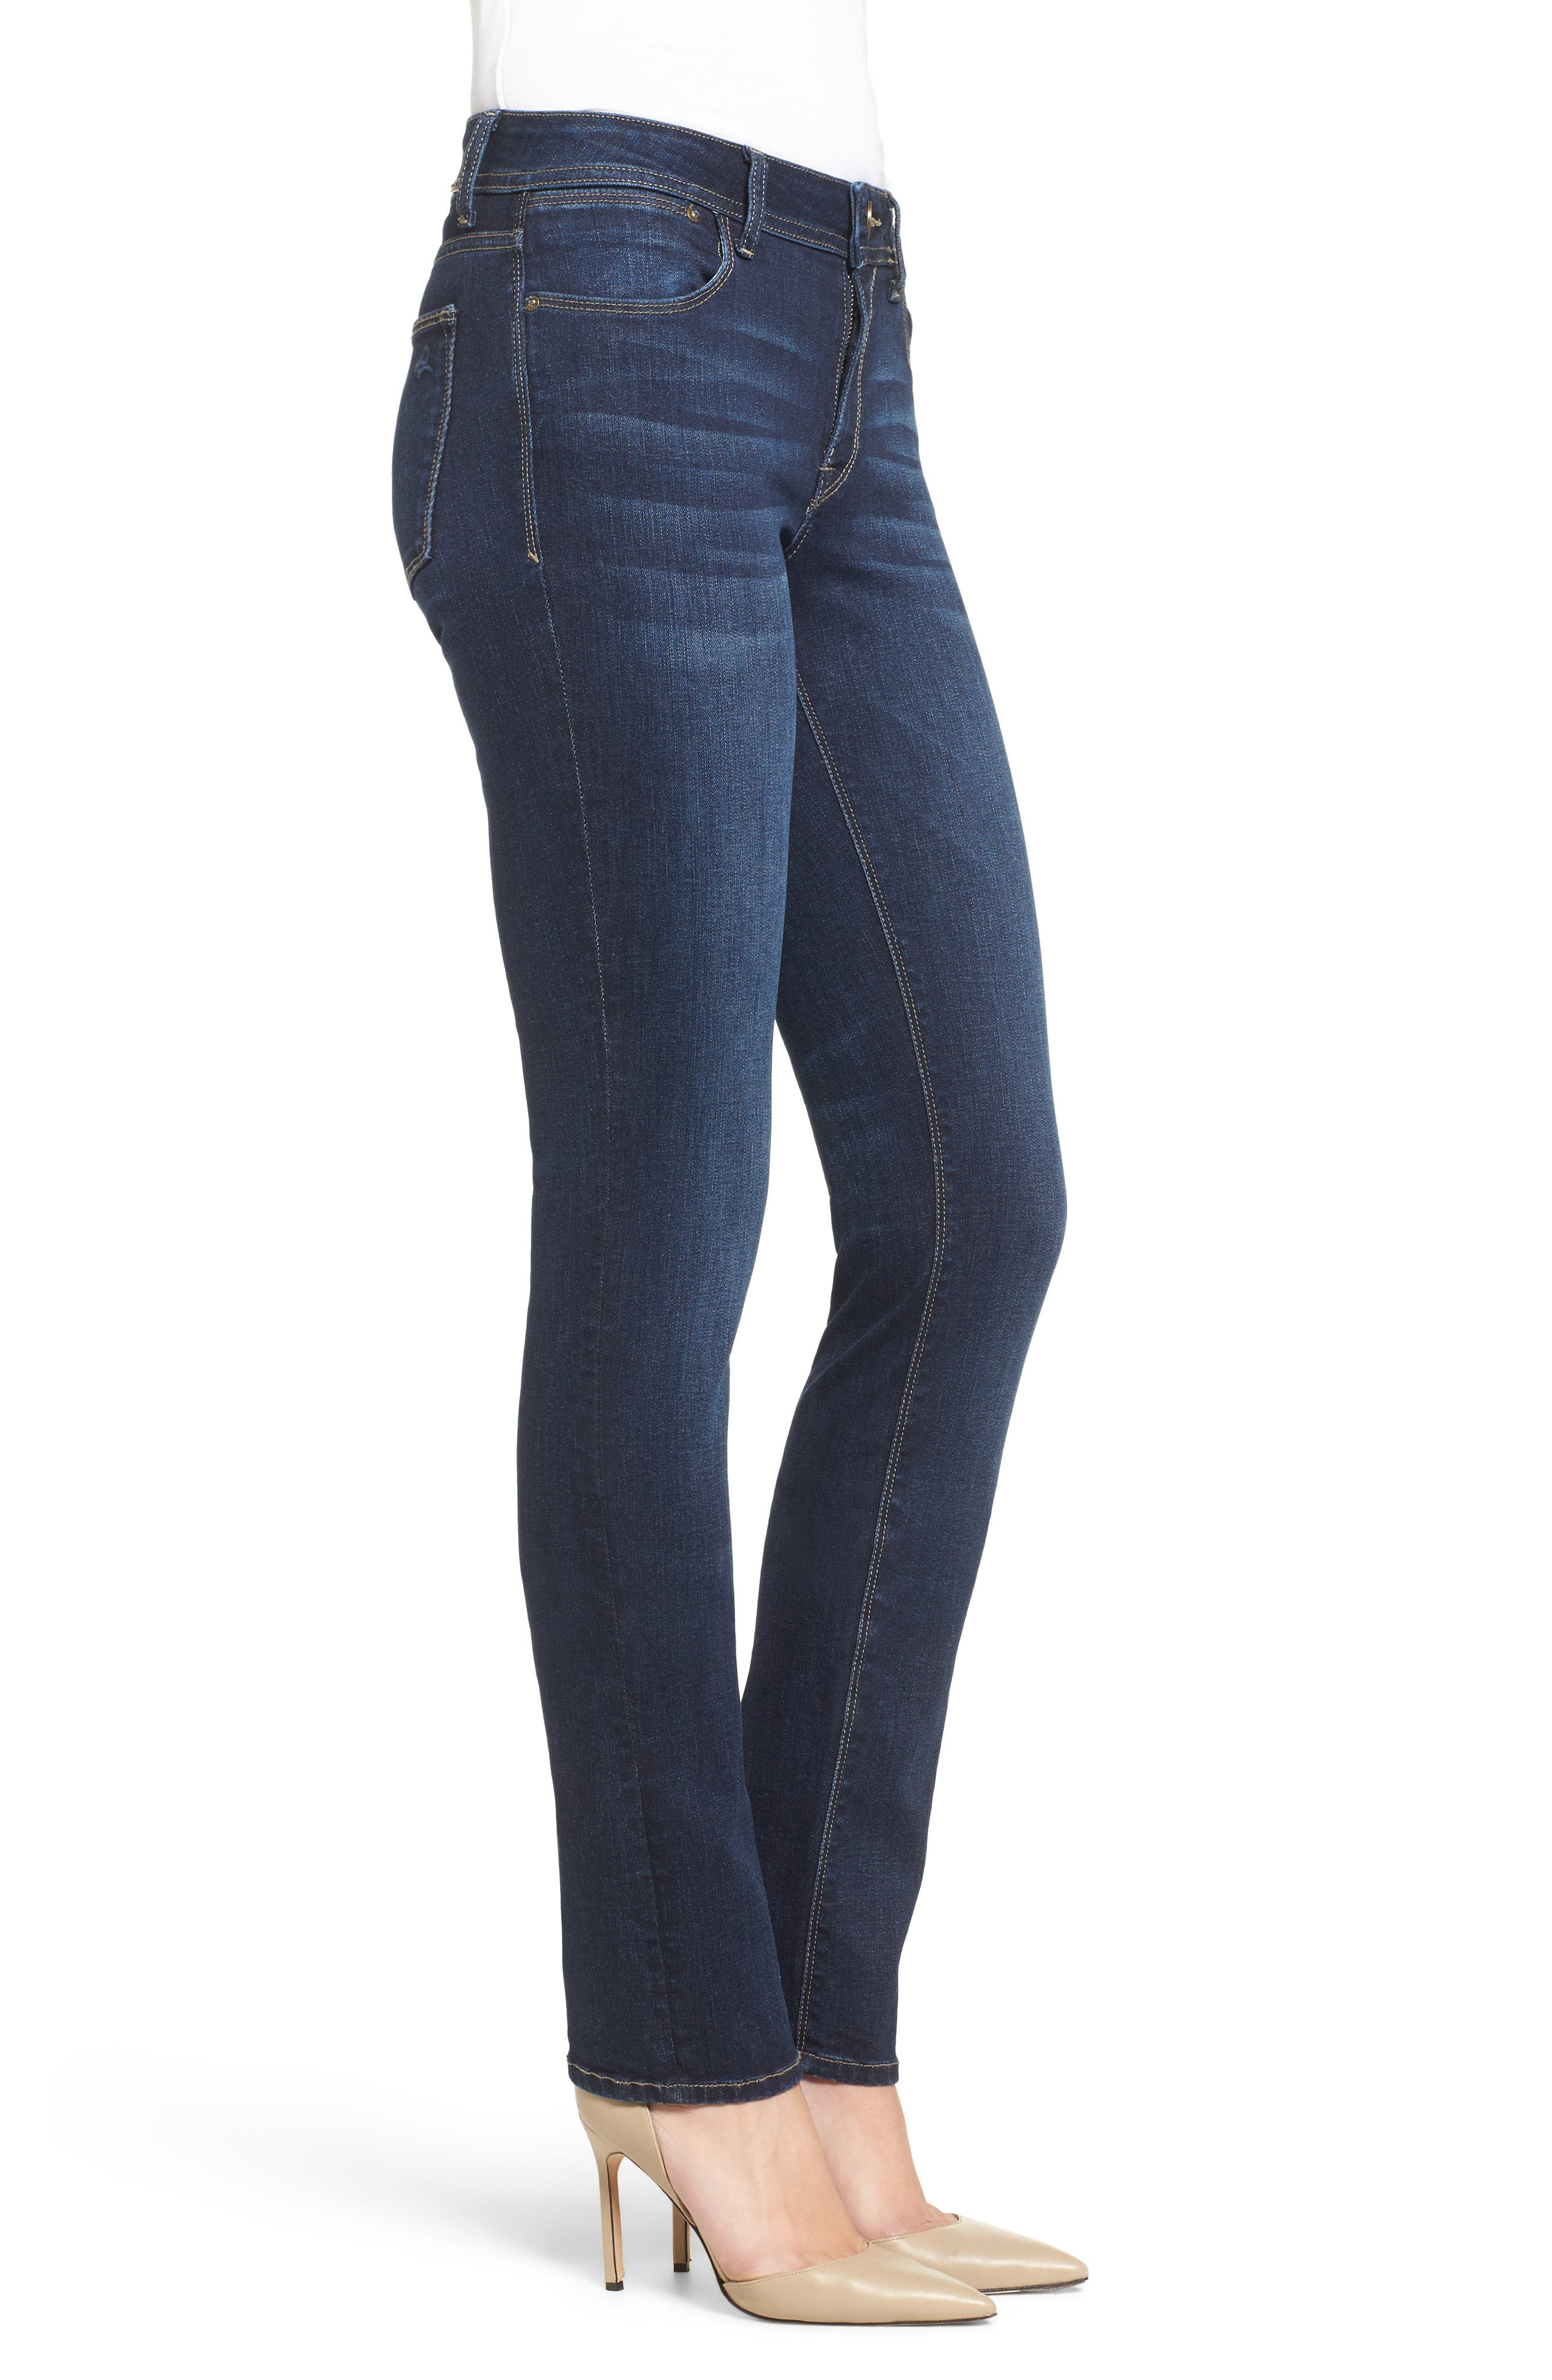 'Coco' Curvy Slim Straight Leg Jeans,                             Alternate thumbnail 4, color,